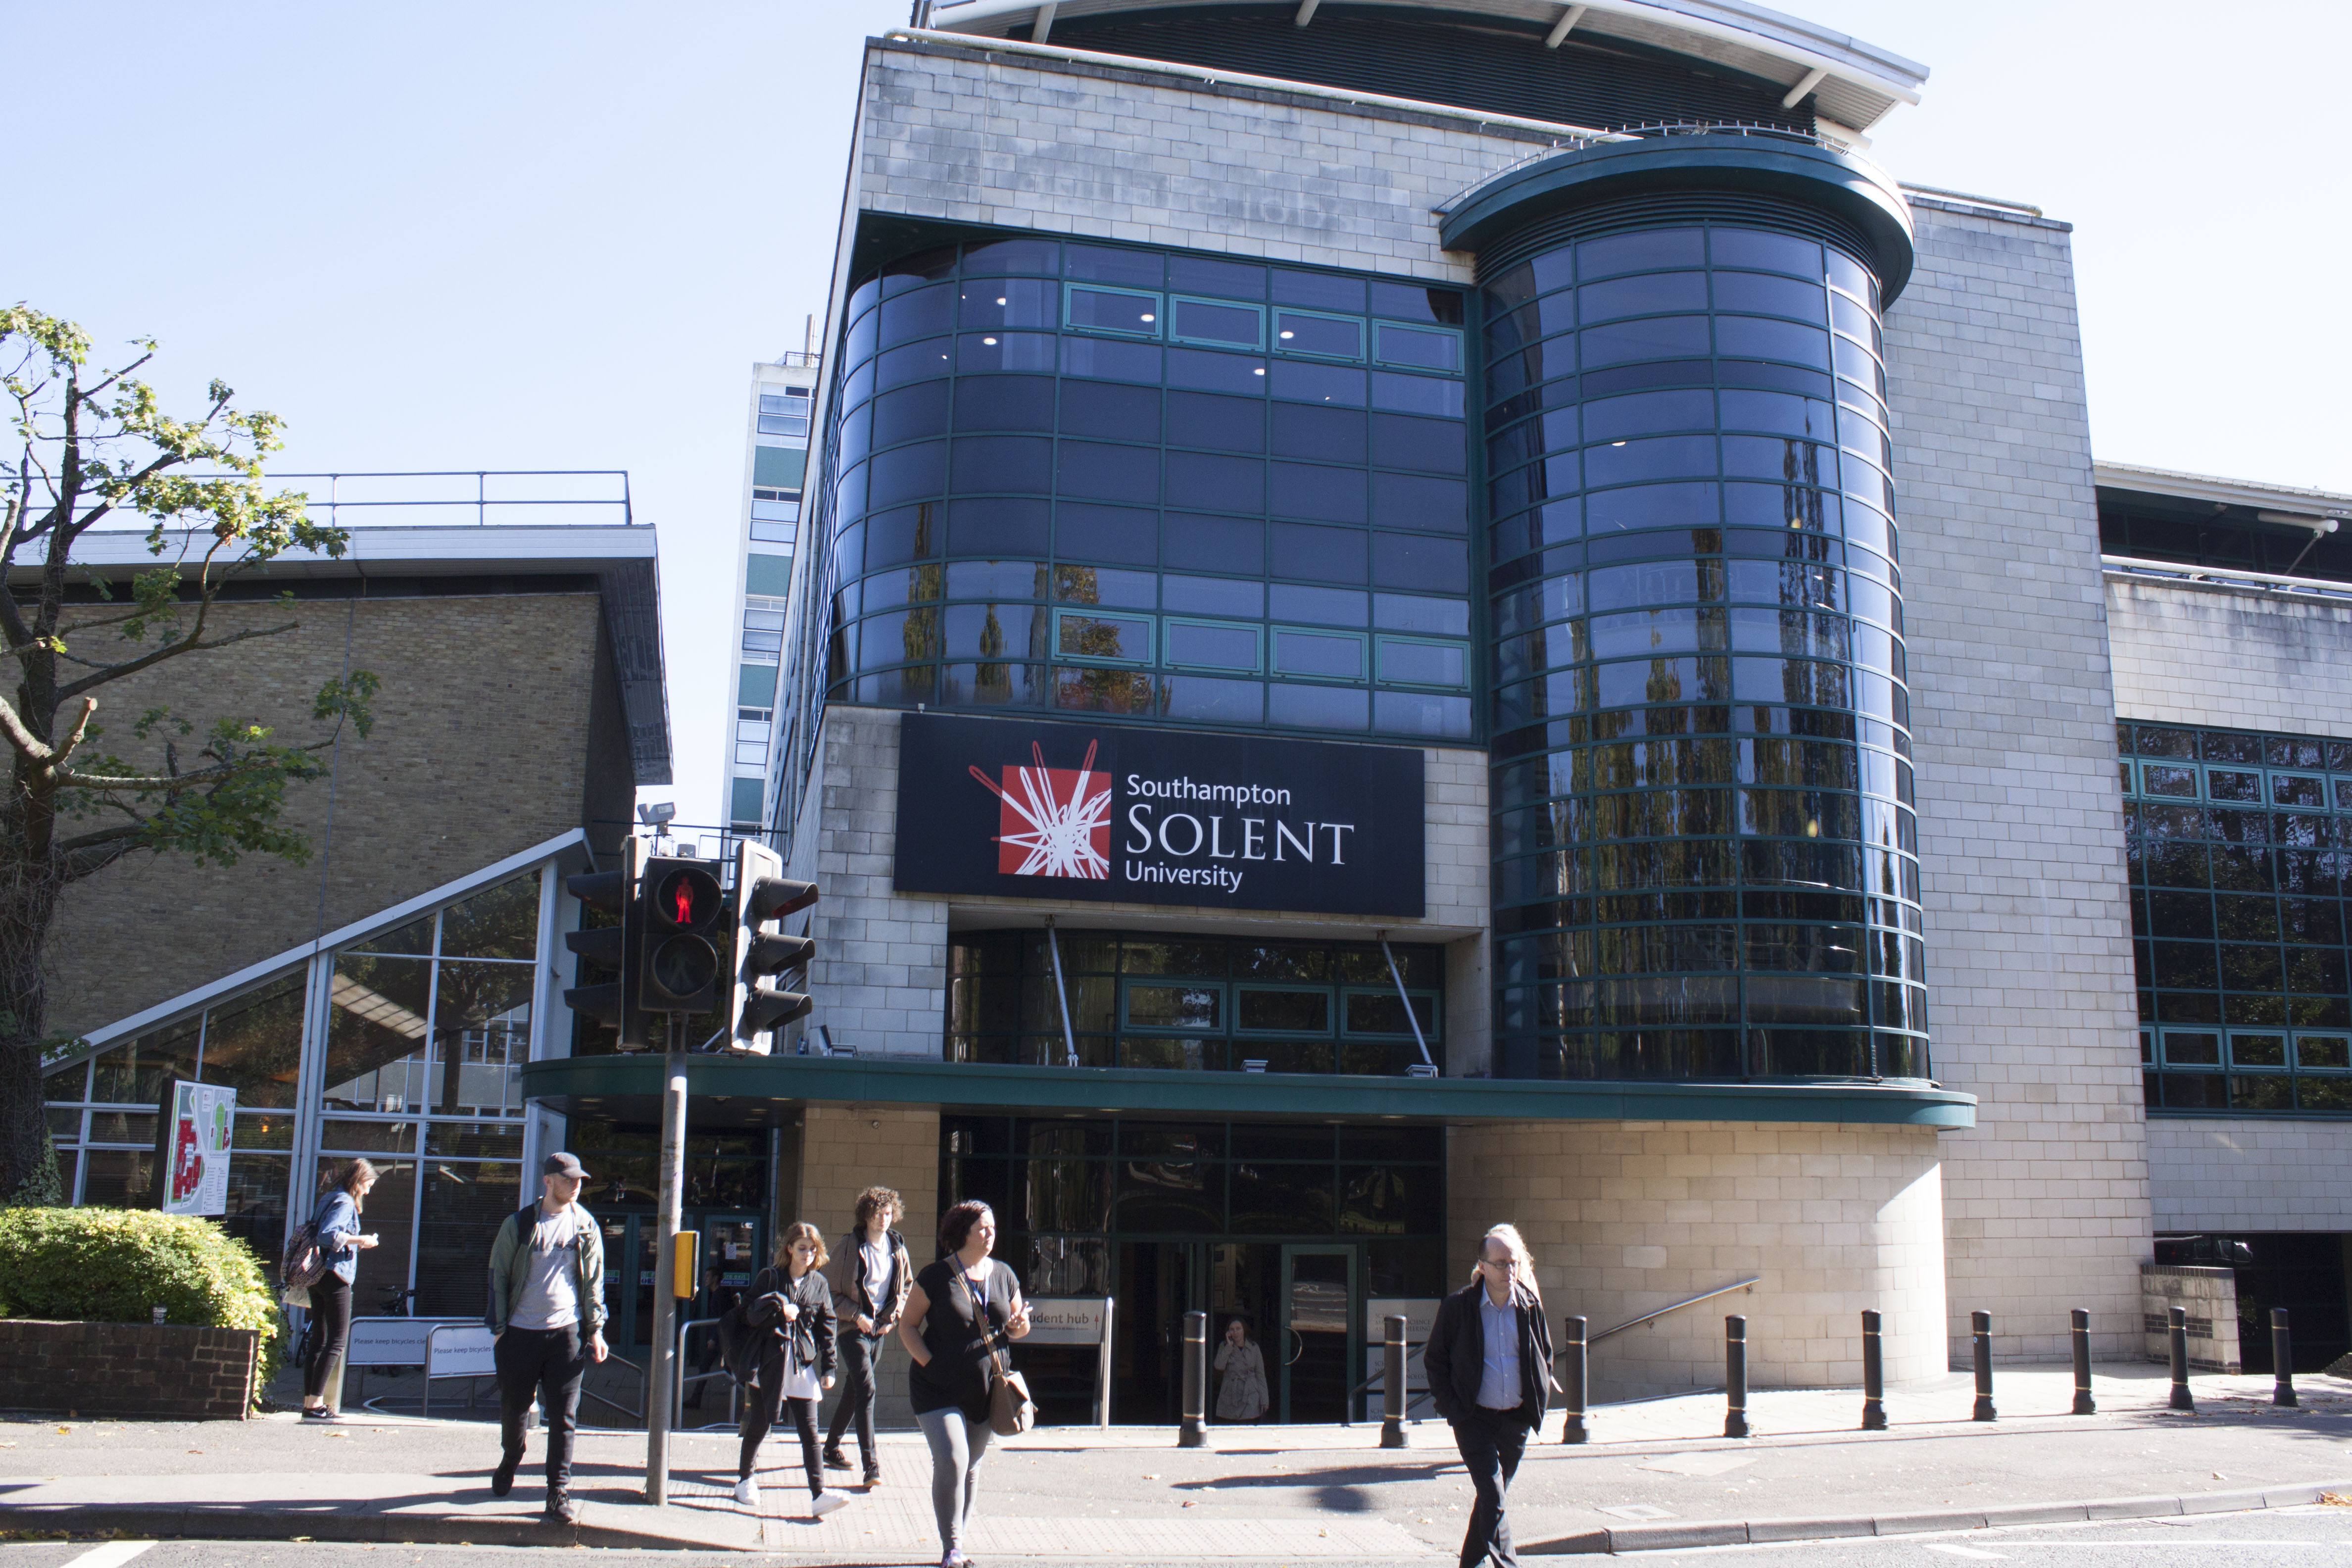 Solent Freshers' Survival Guide